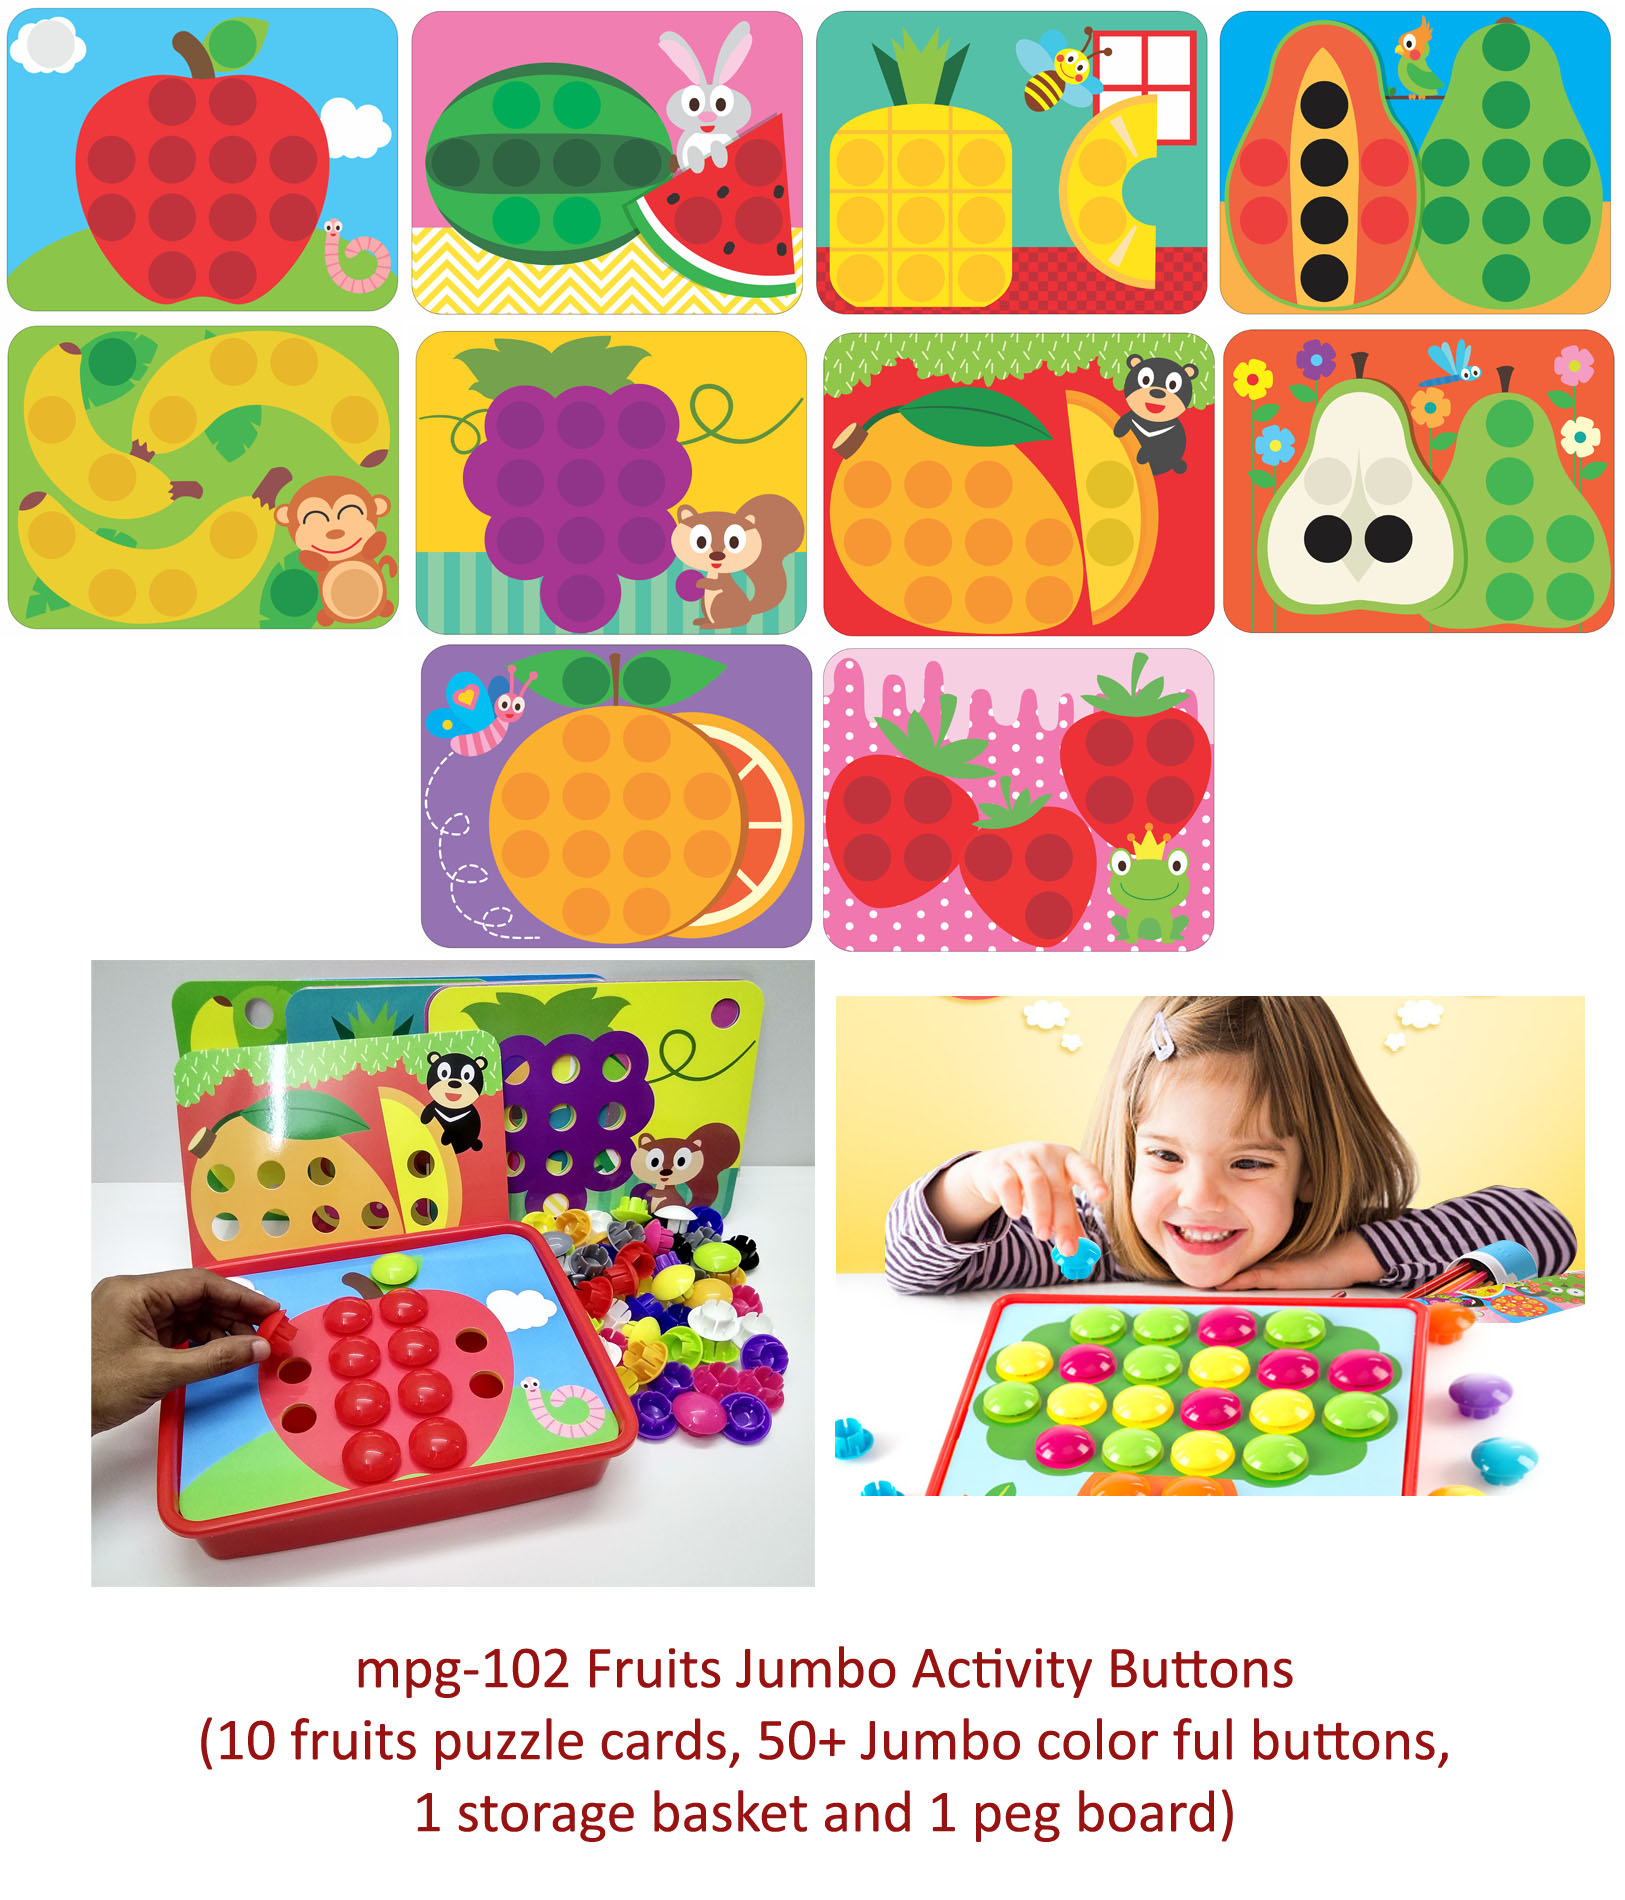 Educational Toys Nursery : Educational toys for preschoolers preschool classroom